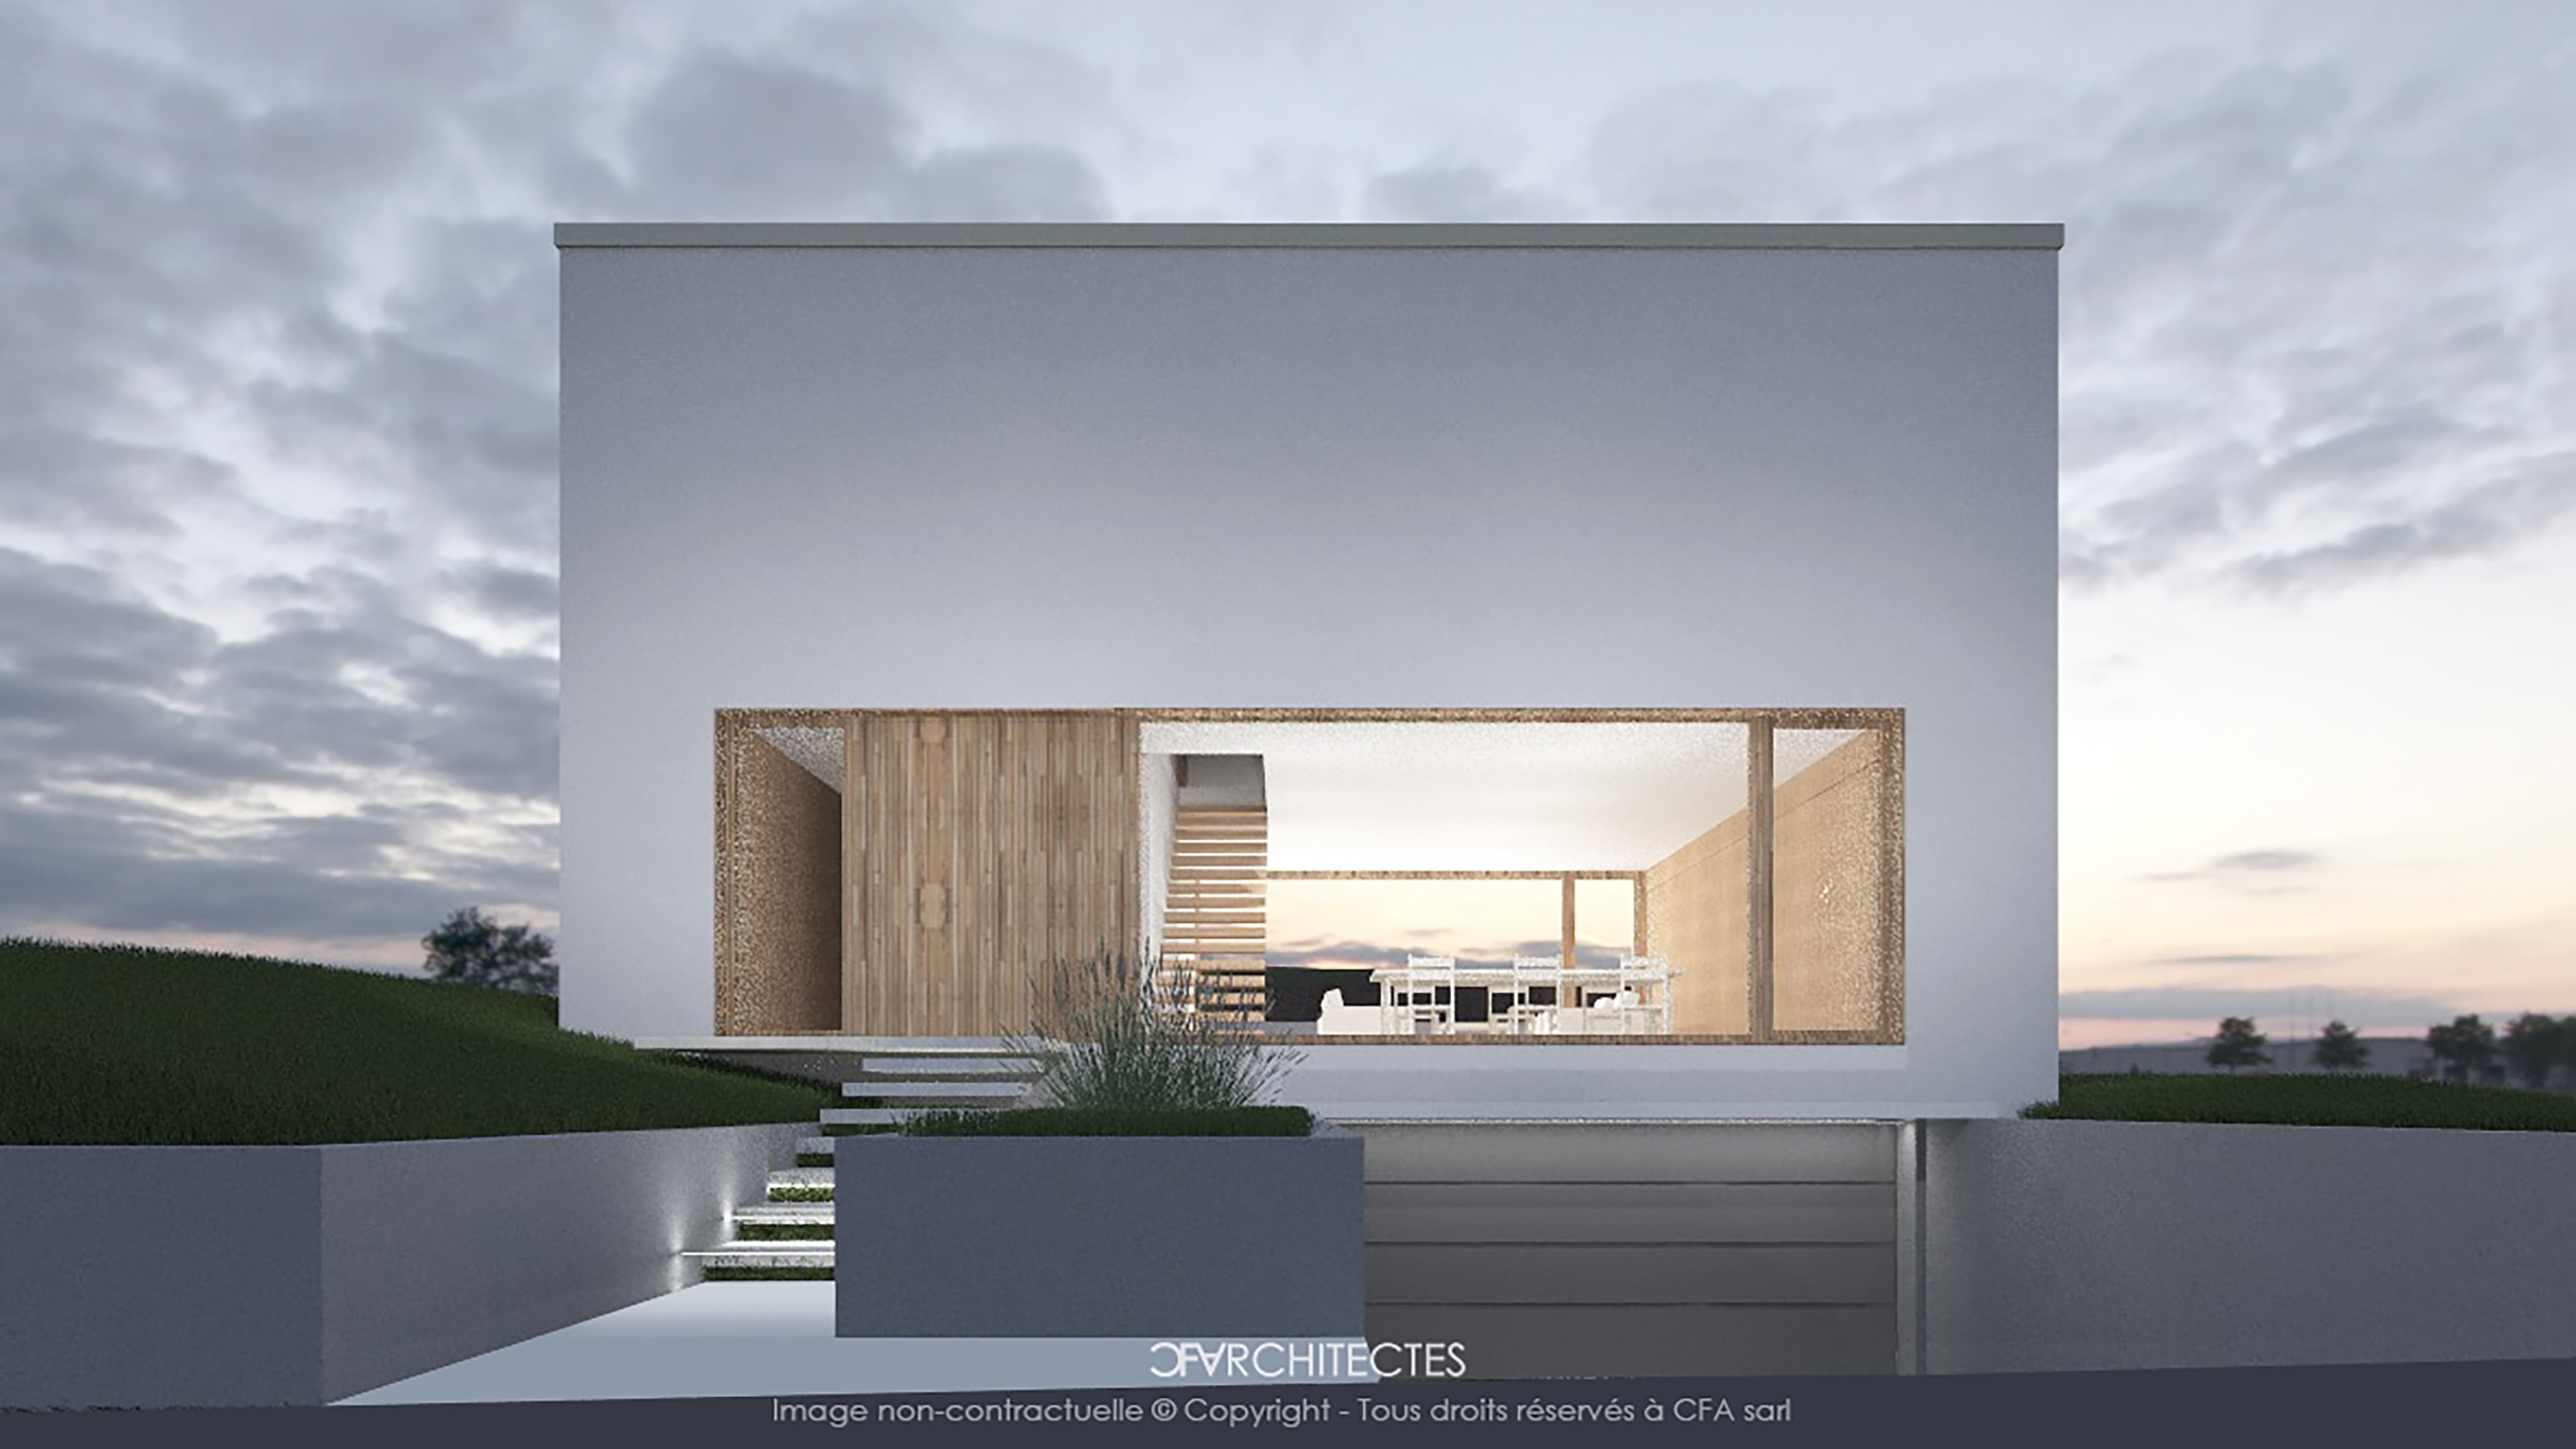 125-luxembourg-dudelange-maison-house-luxe-luxury-architecture-cfa-cfarchitectes-architecte-architect-investment-01